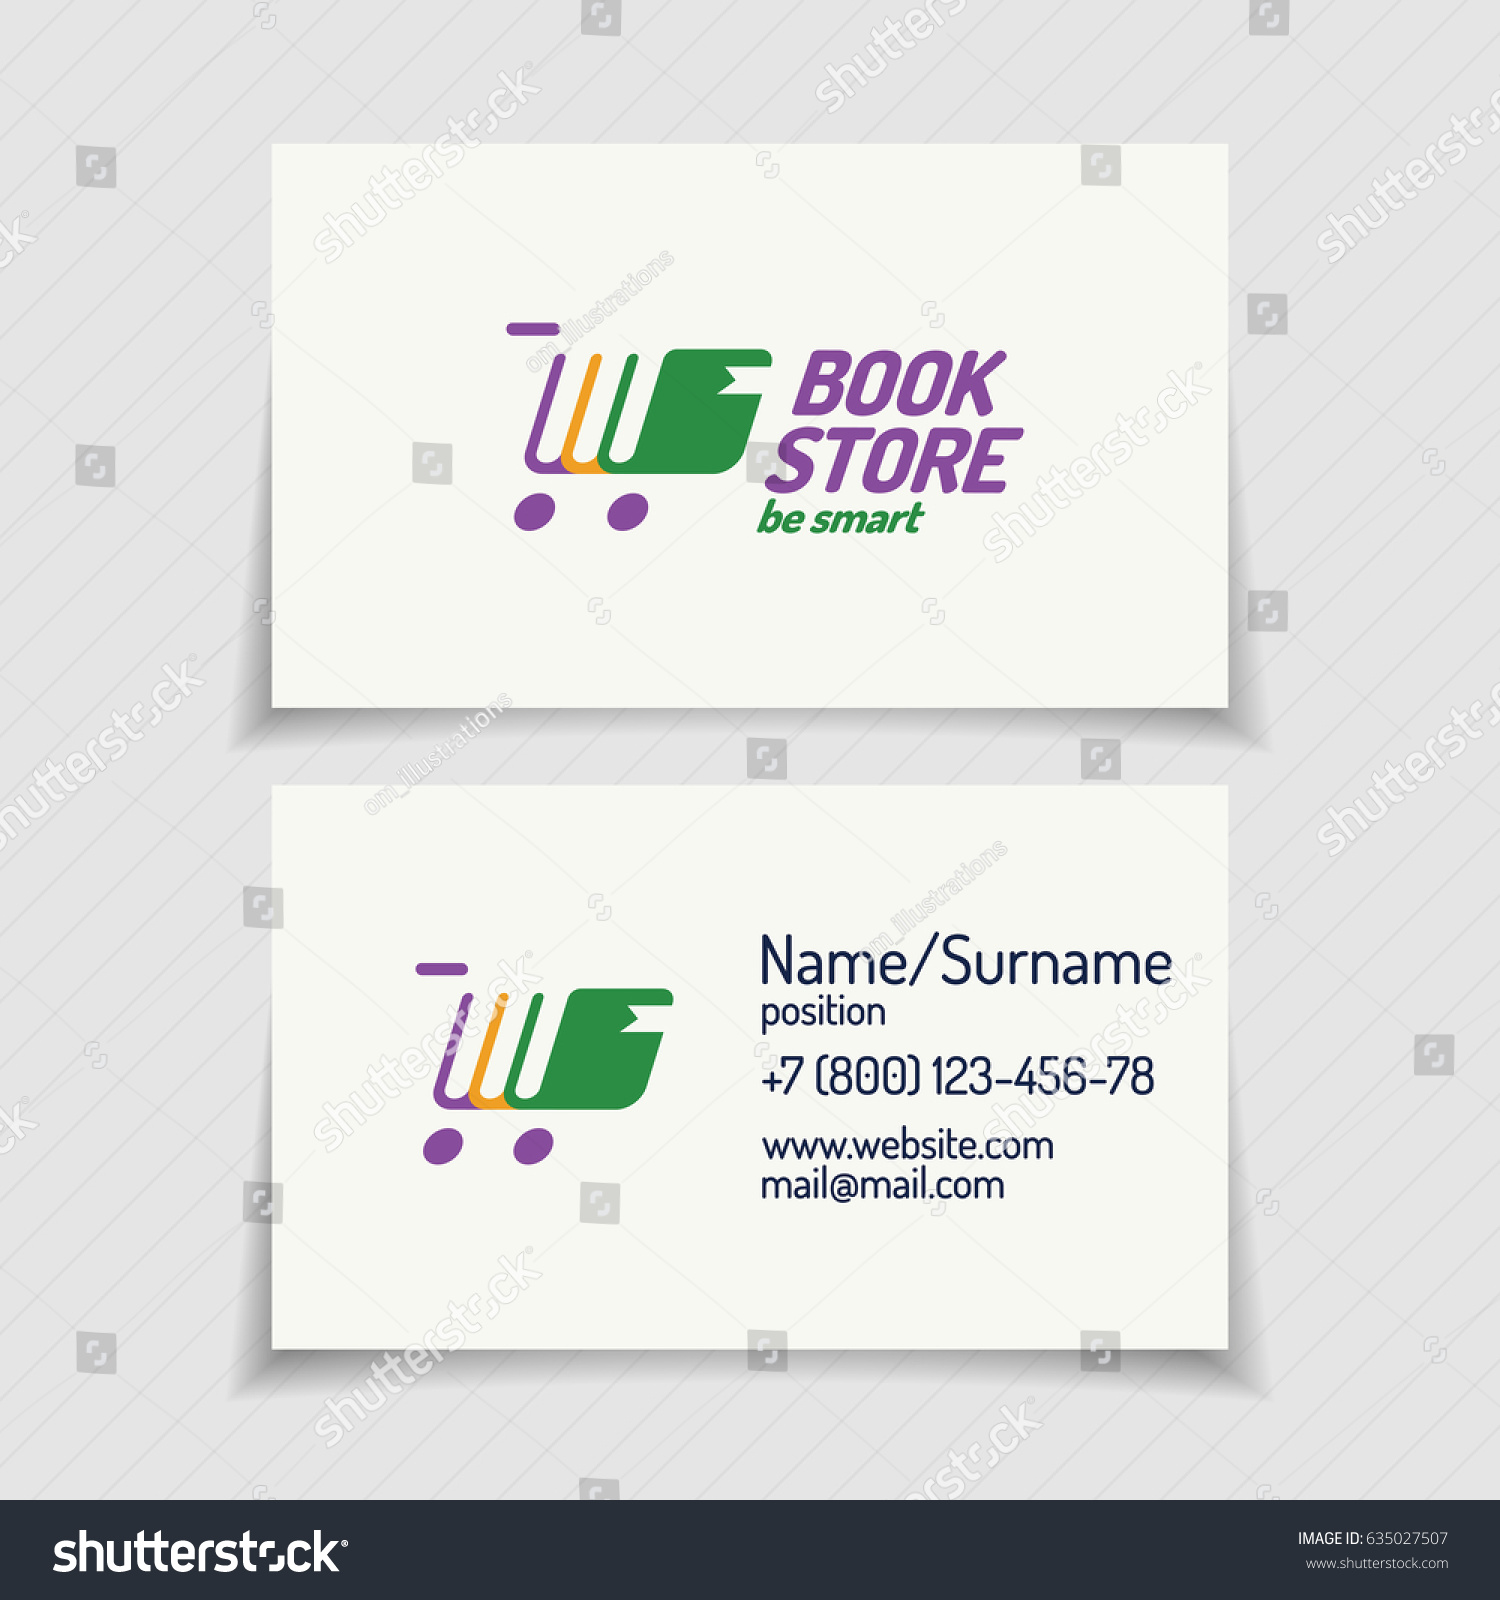 Business Card Book Store Logo Consisting Stock Vector 635027507 ...